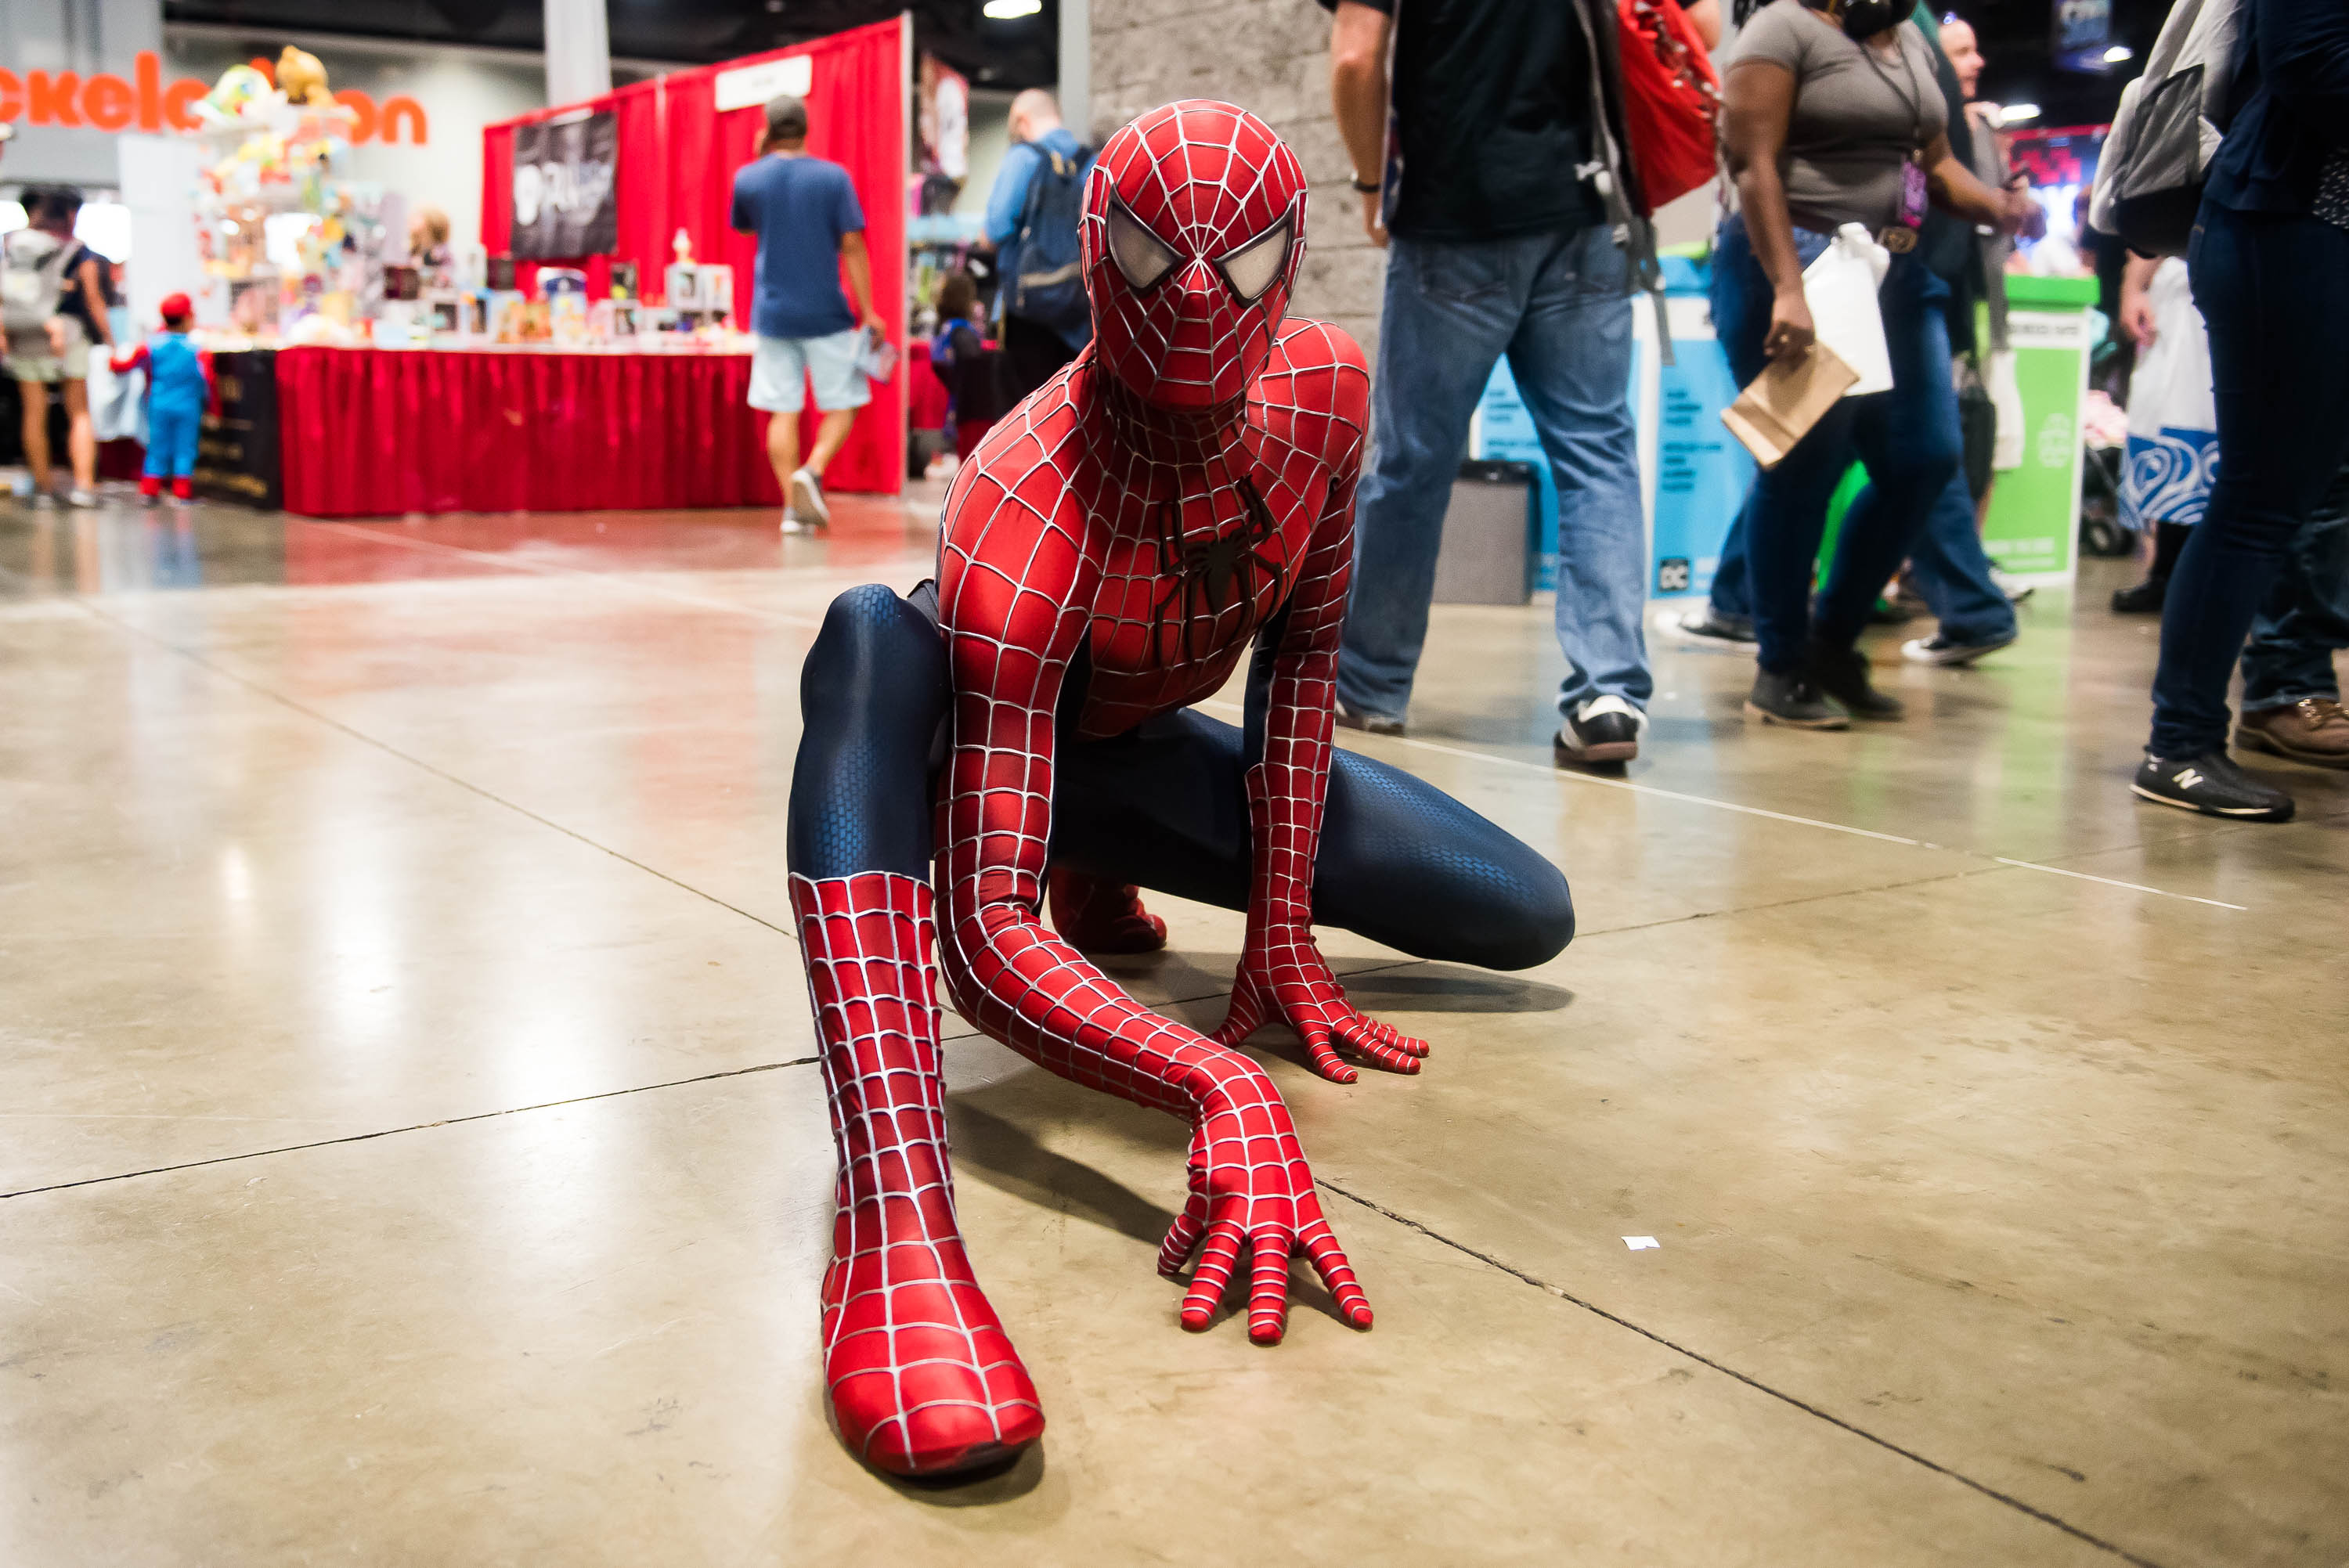 Time to let your inner-nerd out at the 7th annual Awesome Con. (Image: Joy Asico)